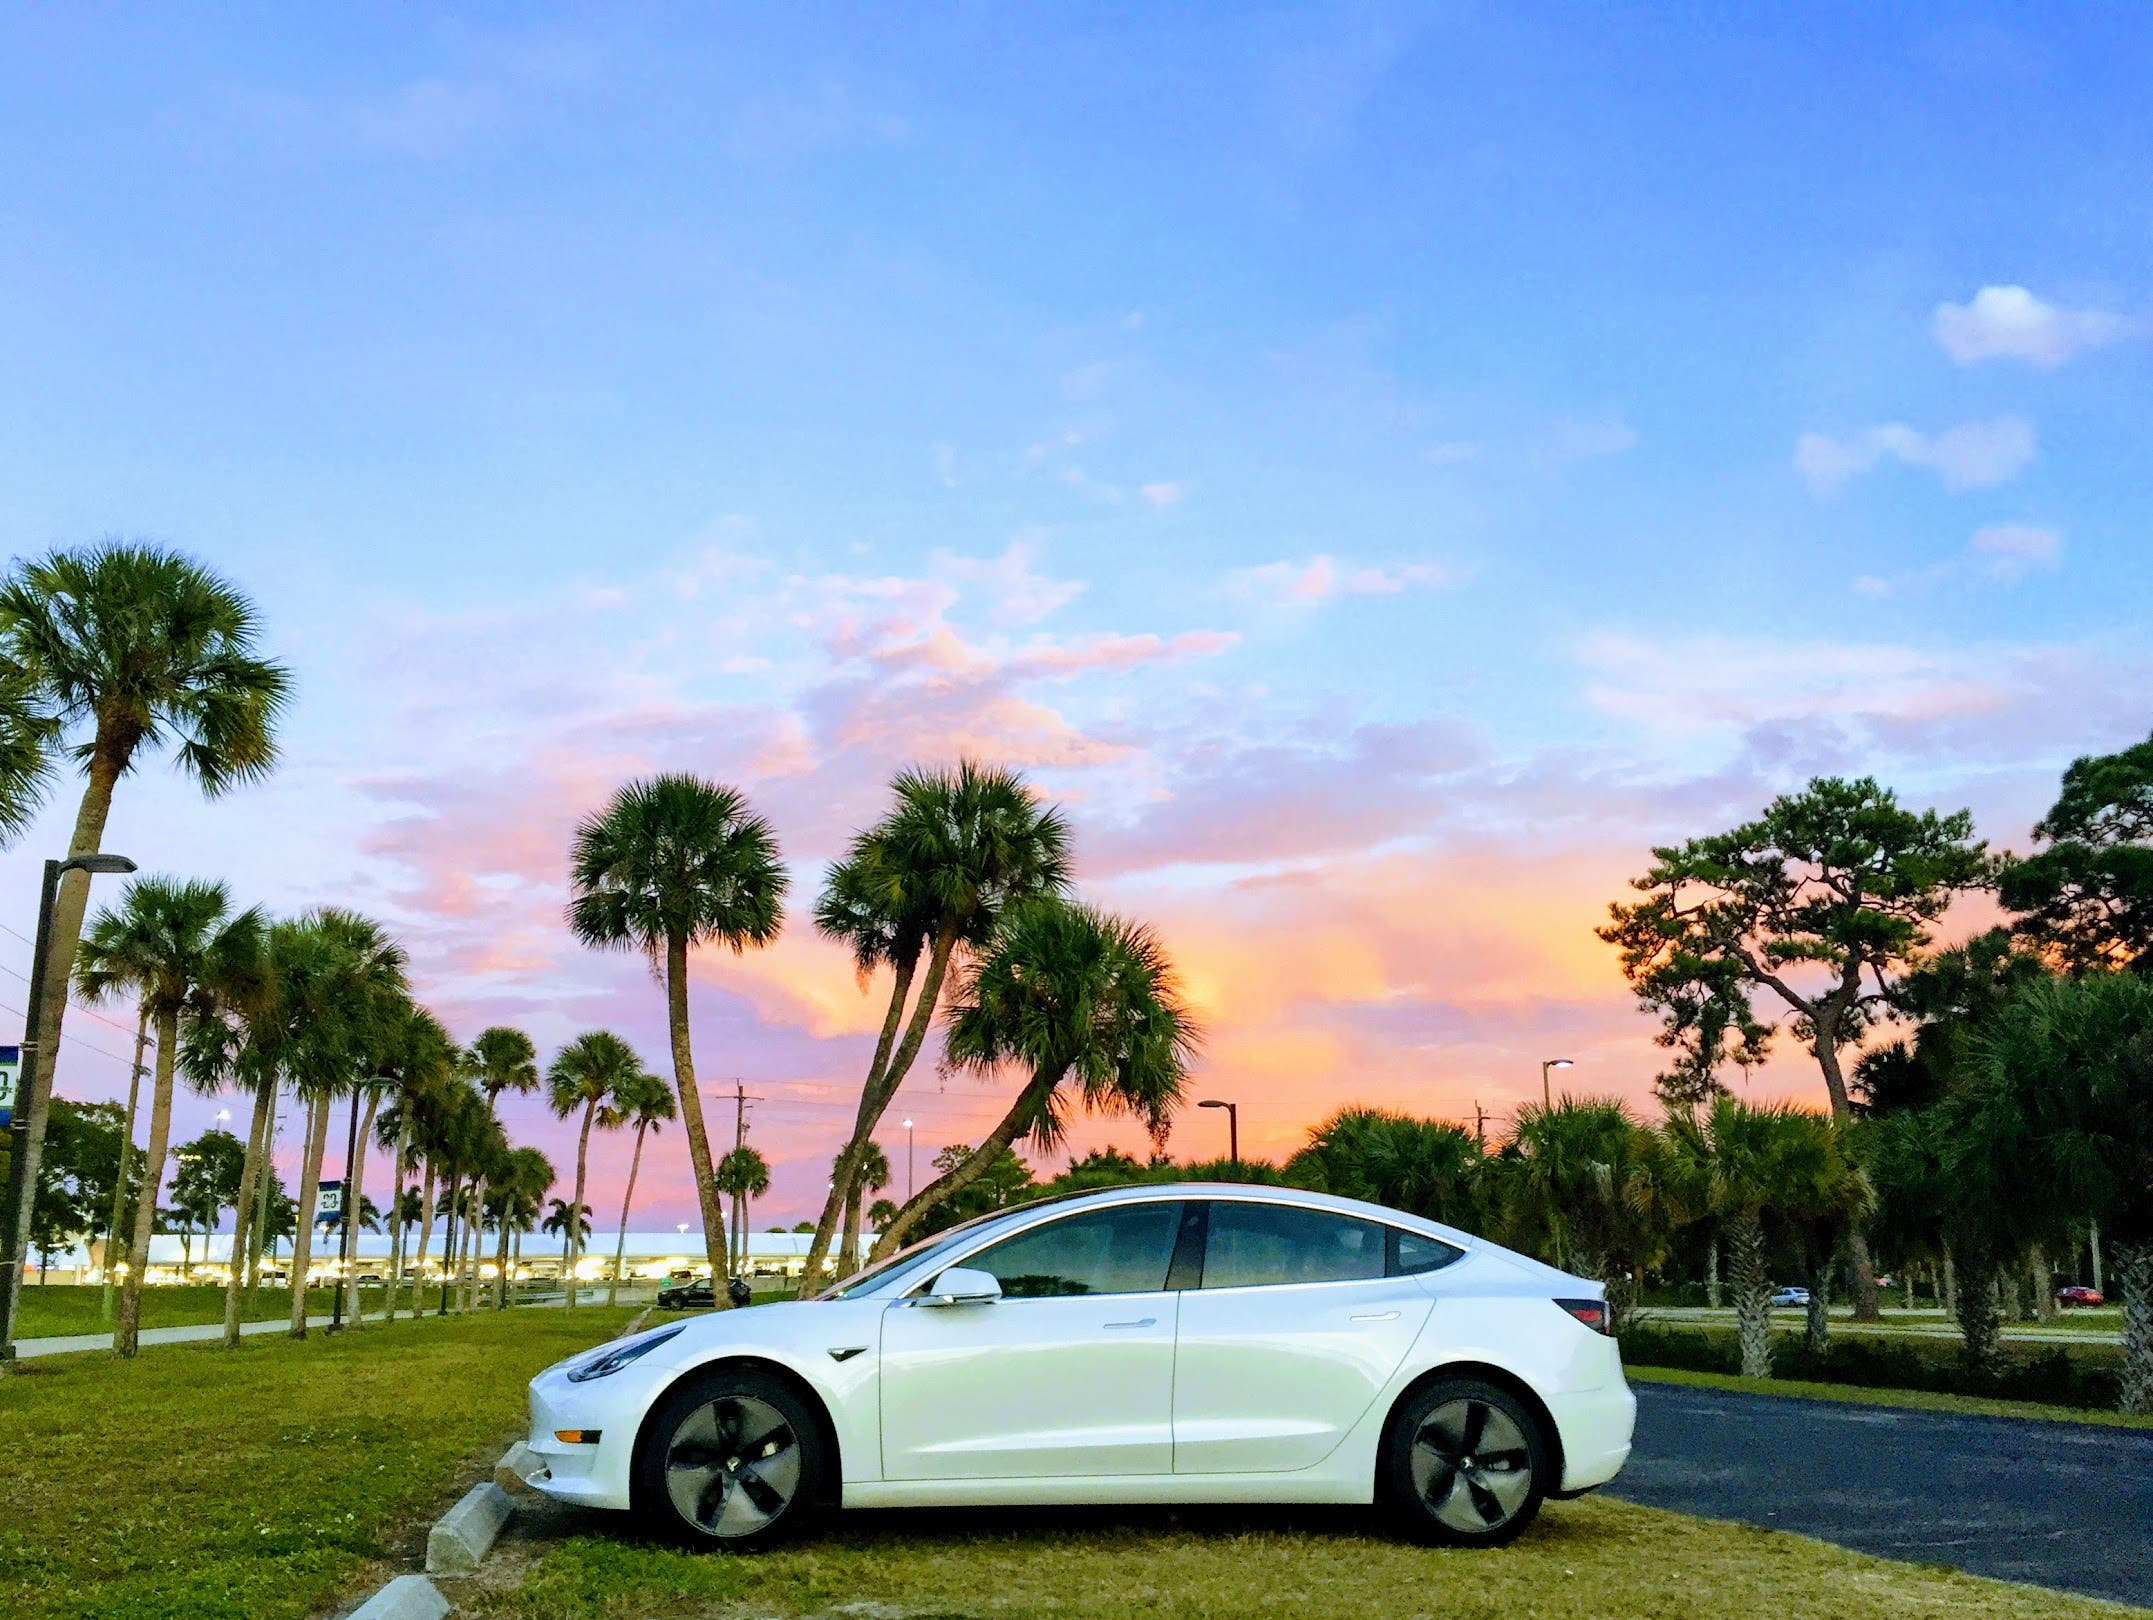 88 Cleantechnica Electric Vehicle Reviews